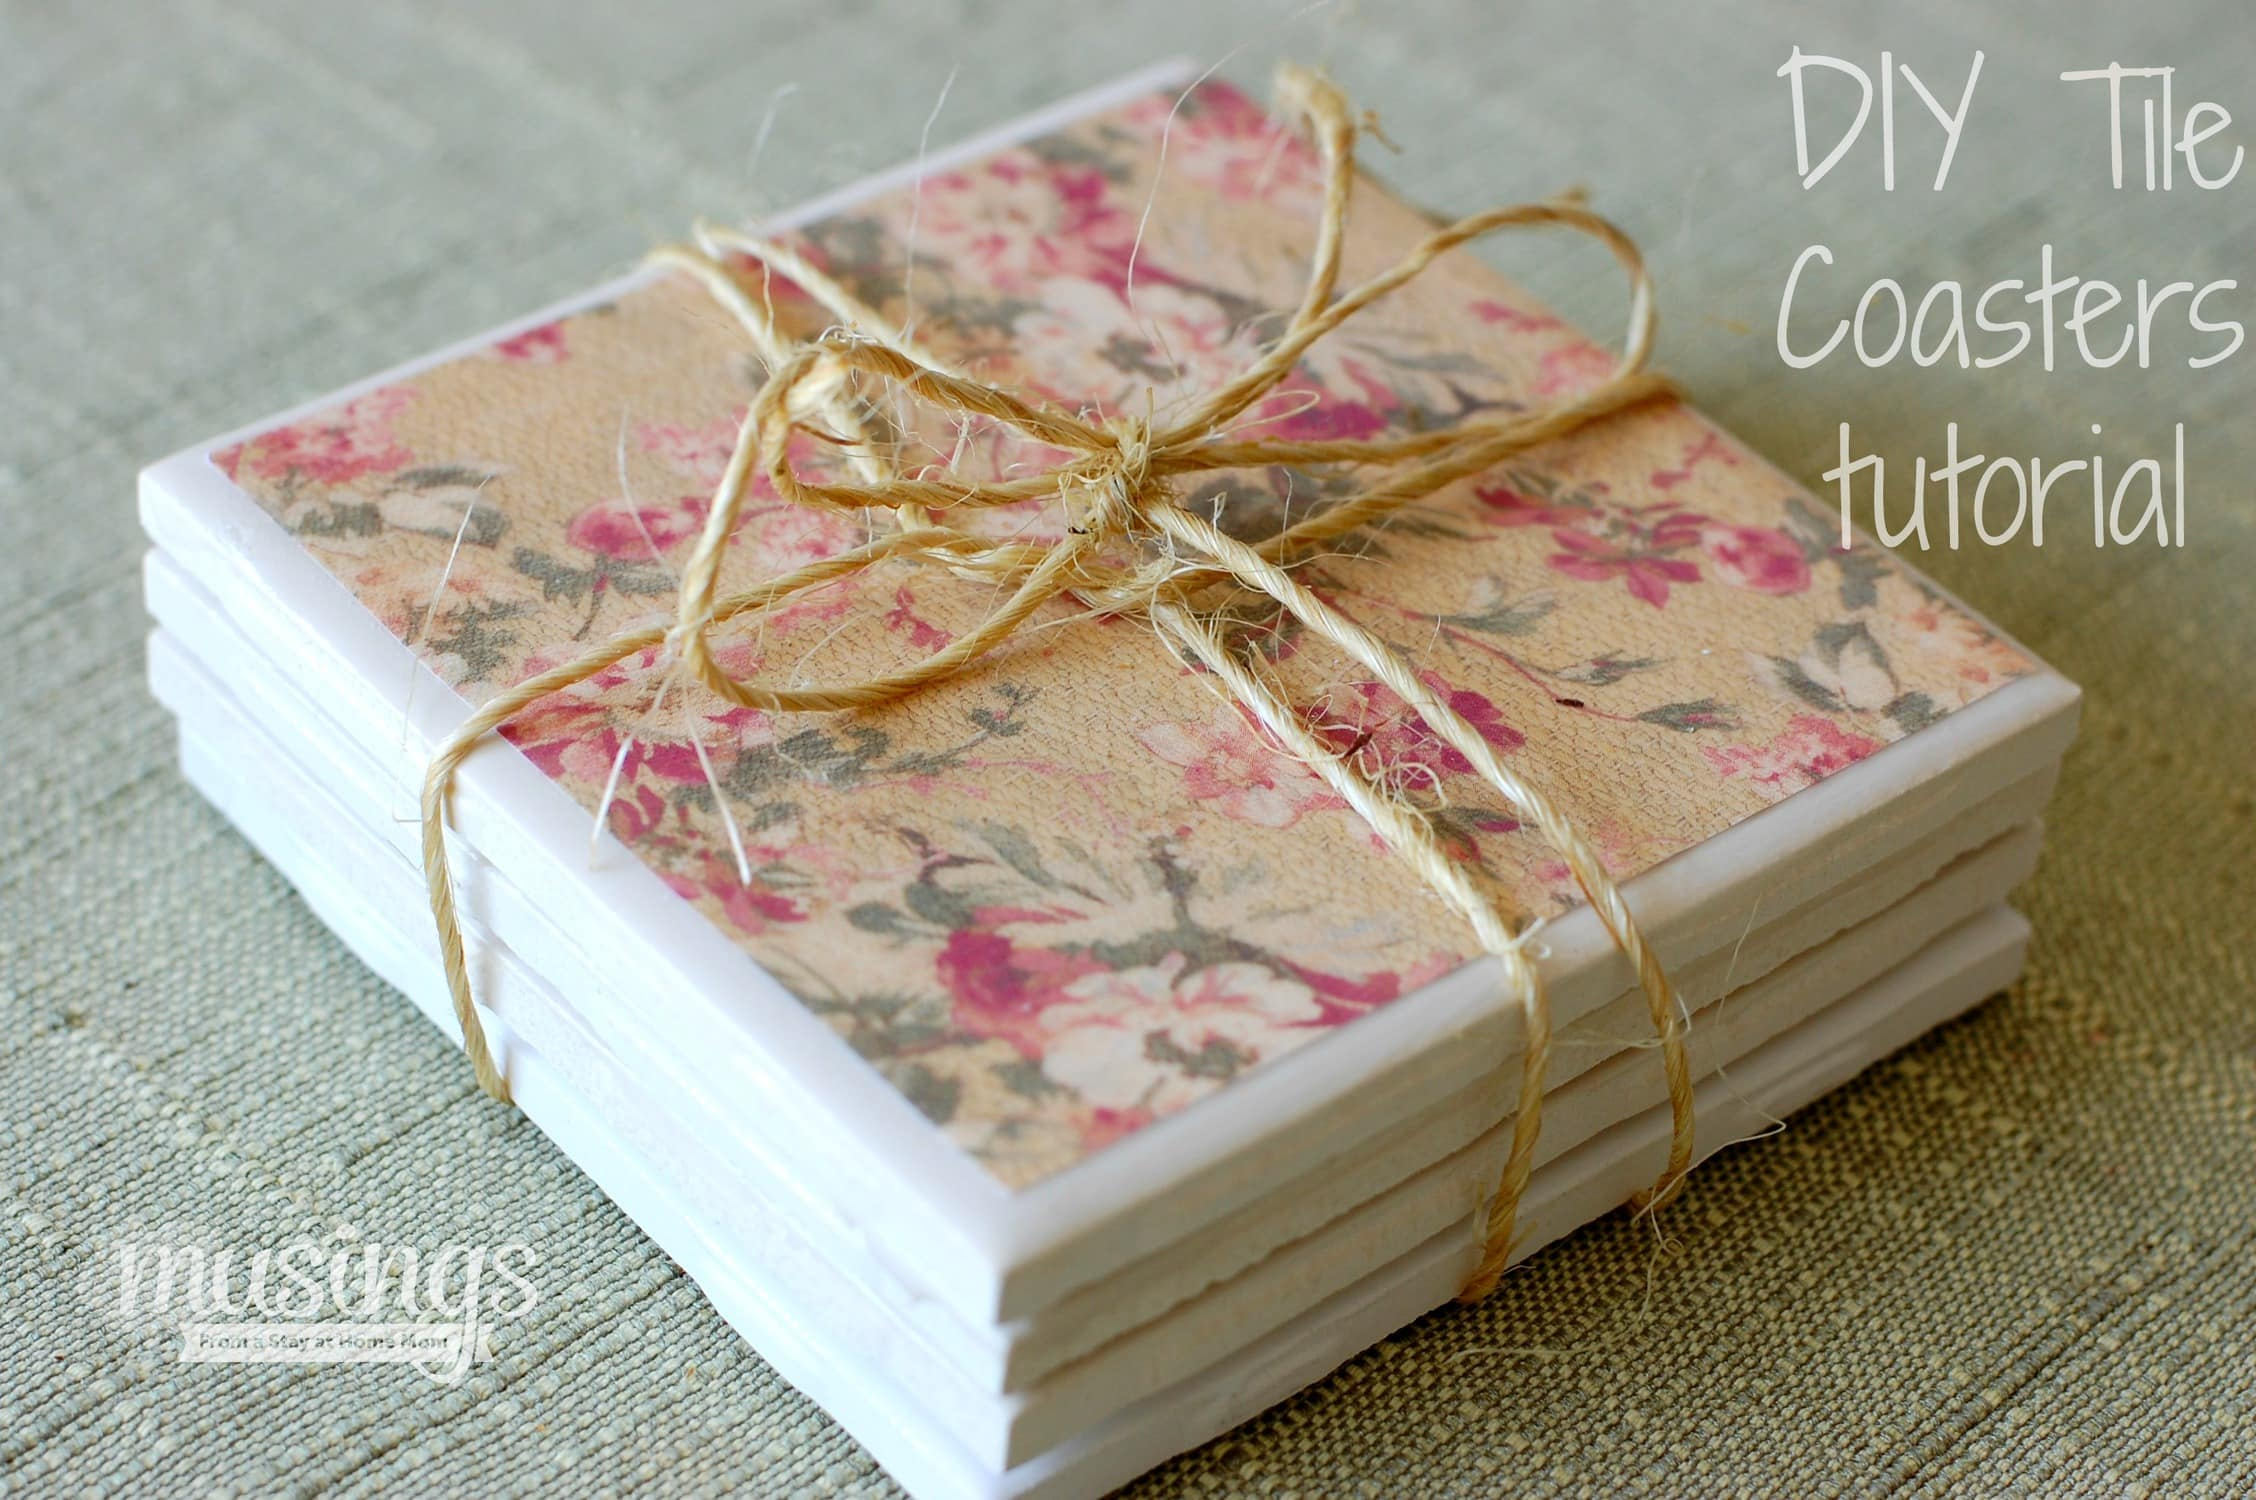 diy tile coasters tutorial living well mom